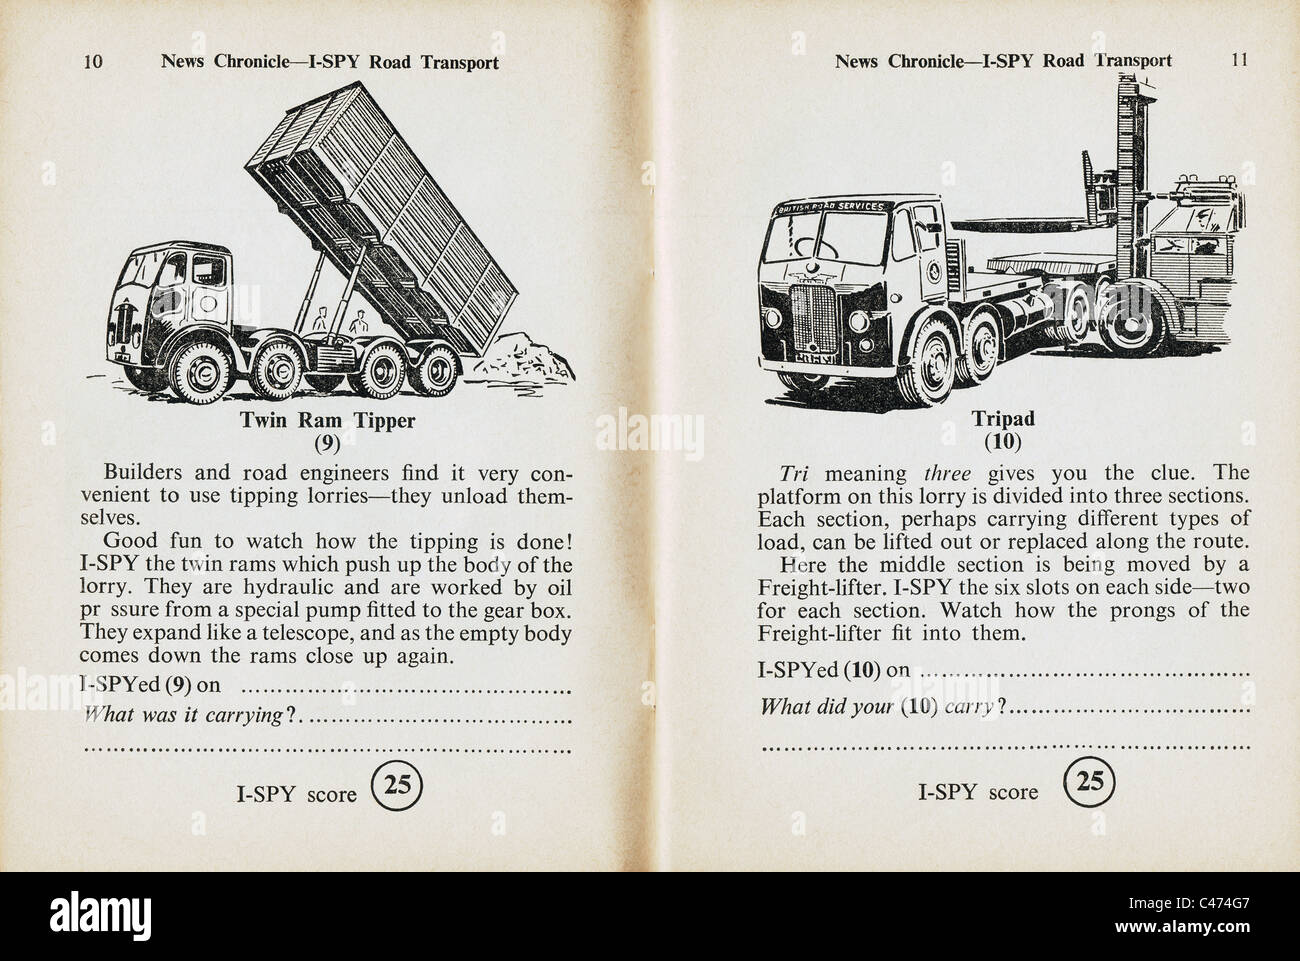 Pages from I-Spy book of Road Transport published by the Daily News in 1960 - Stock Image